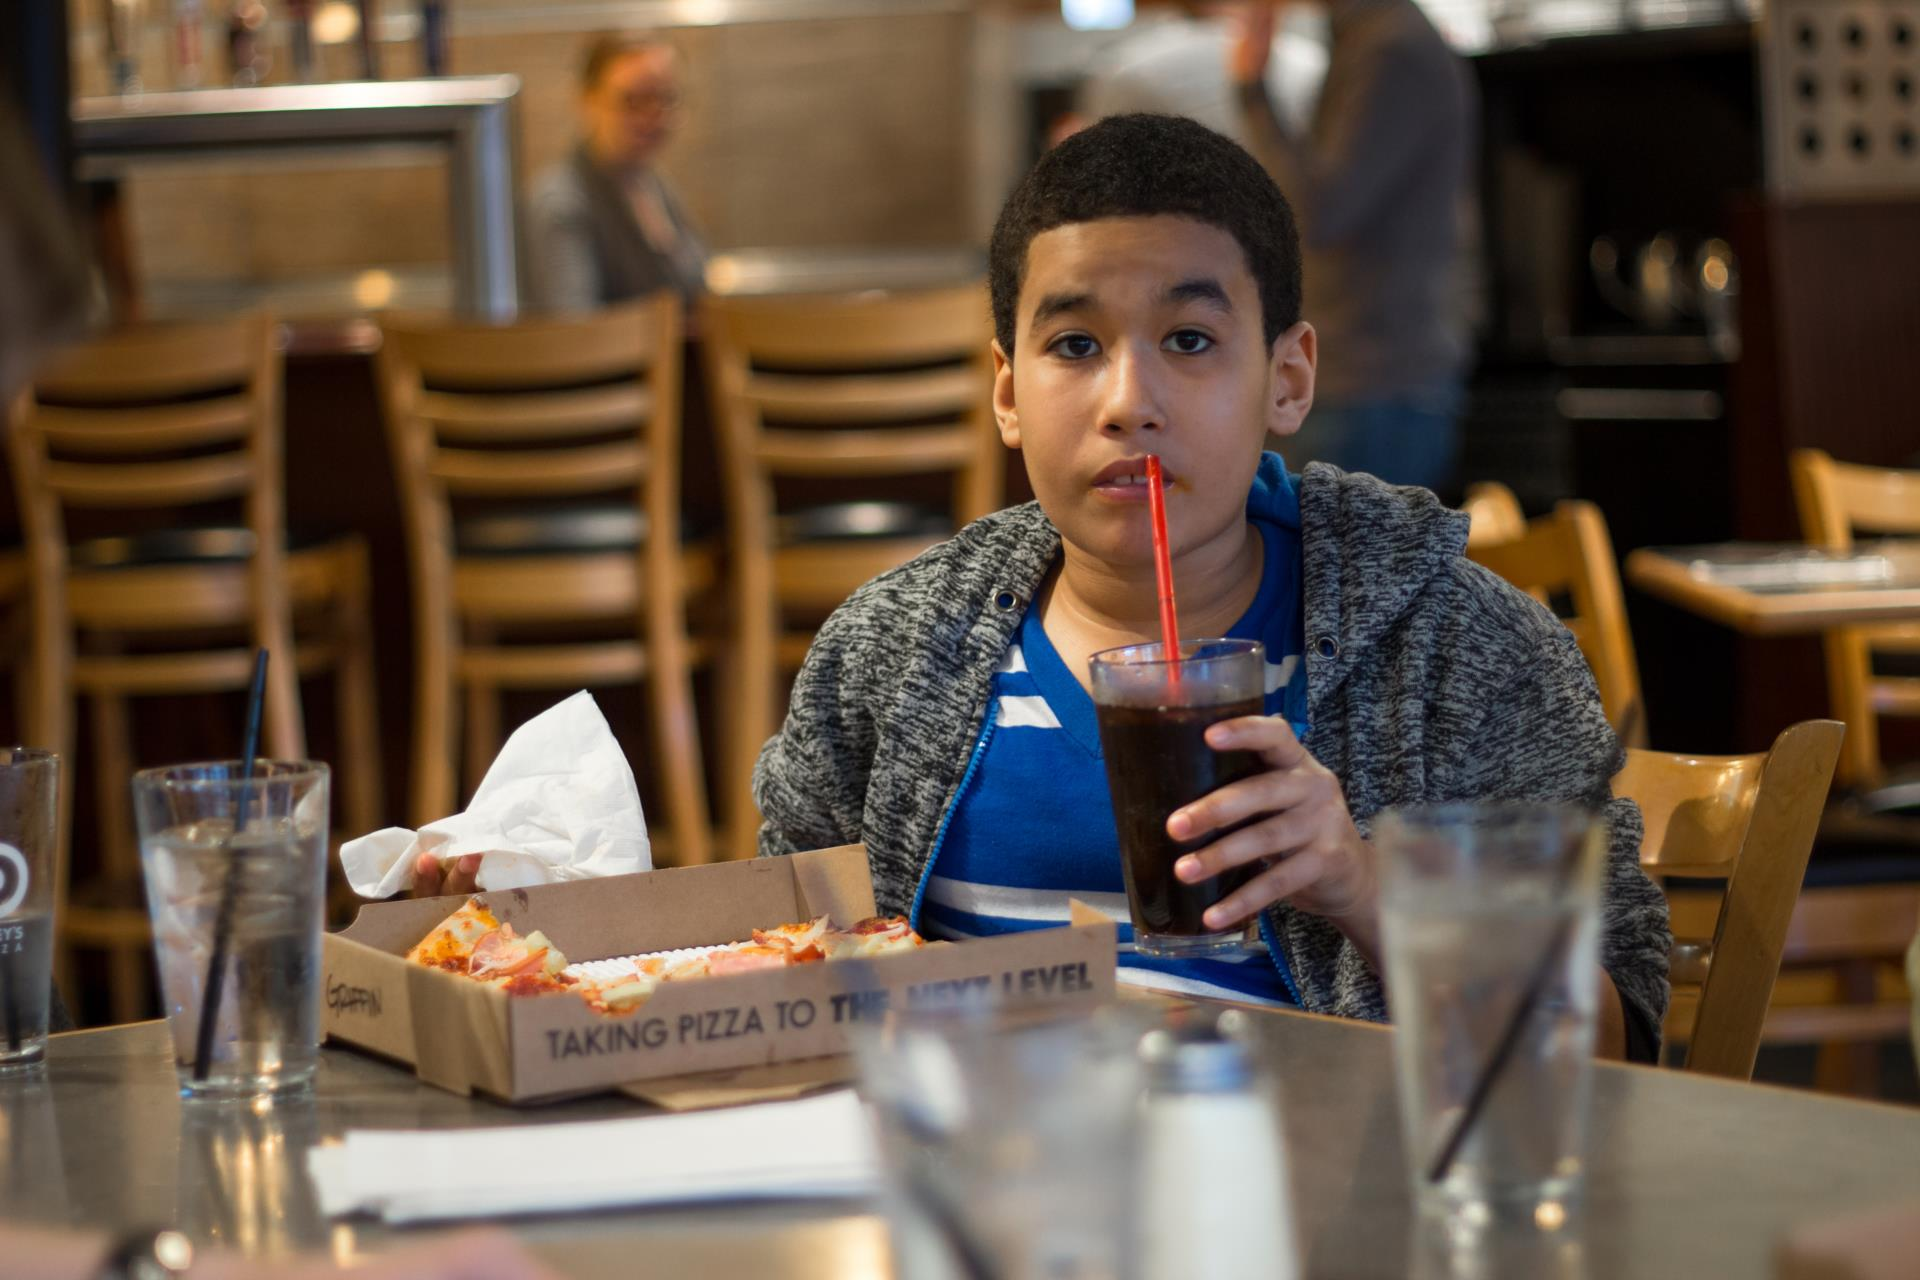 Boy drinking pop at table